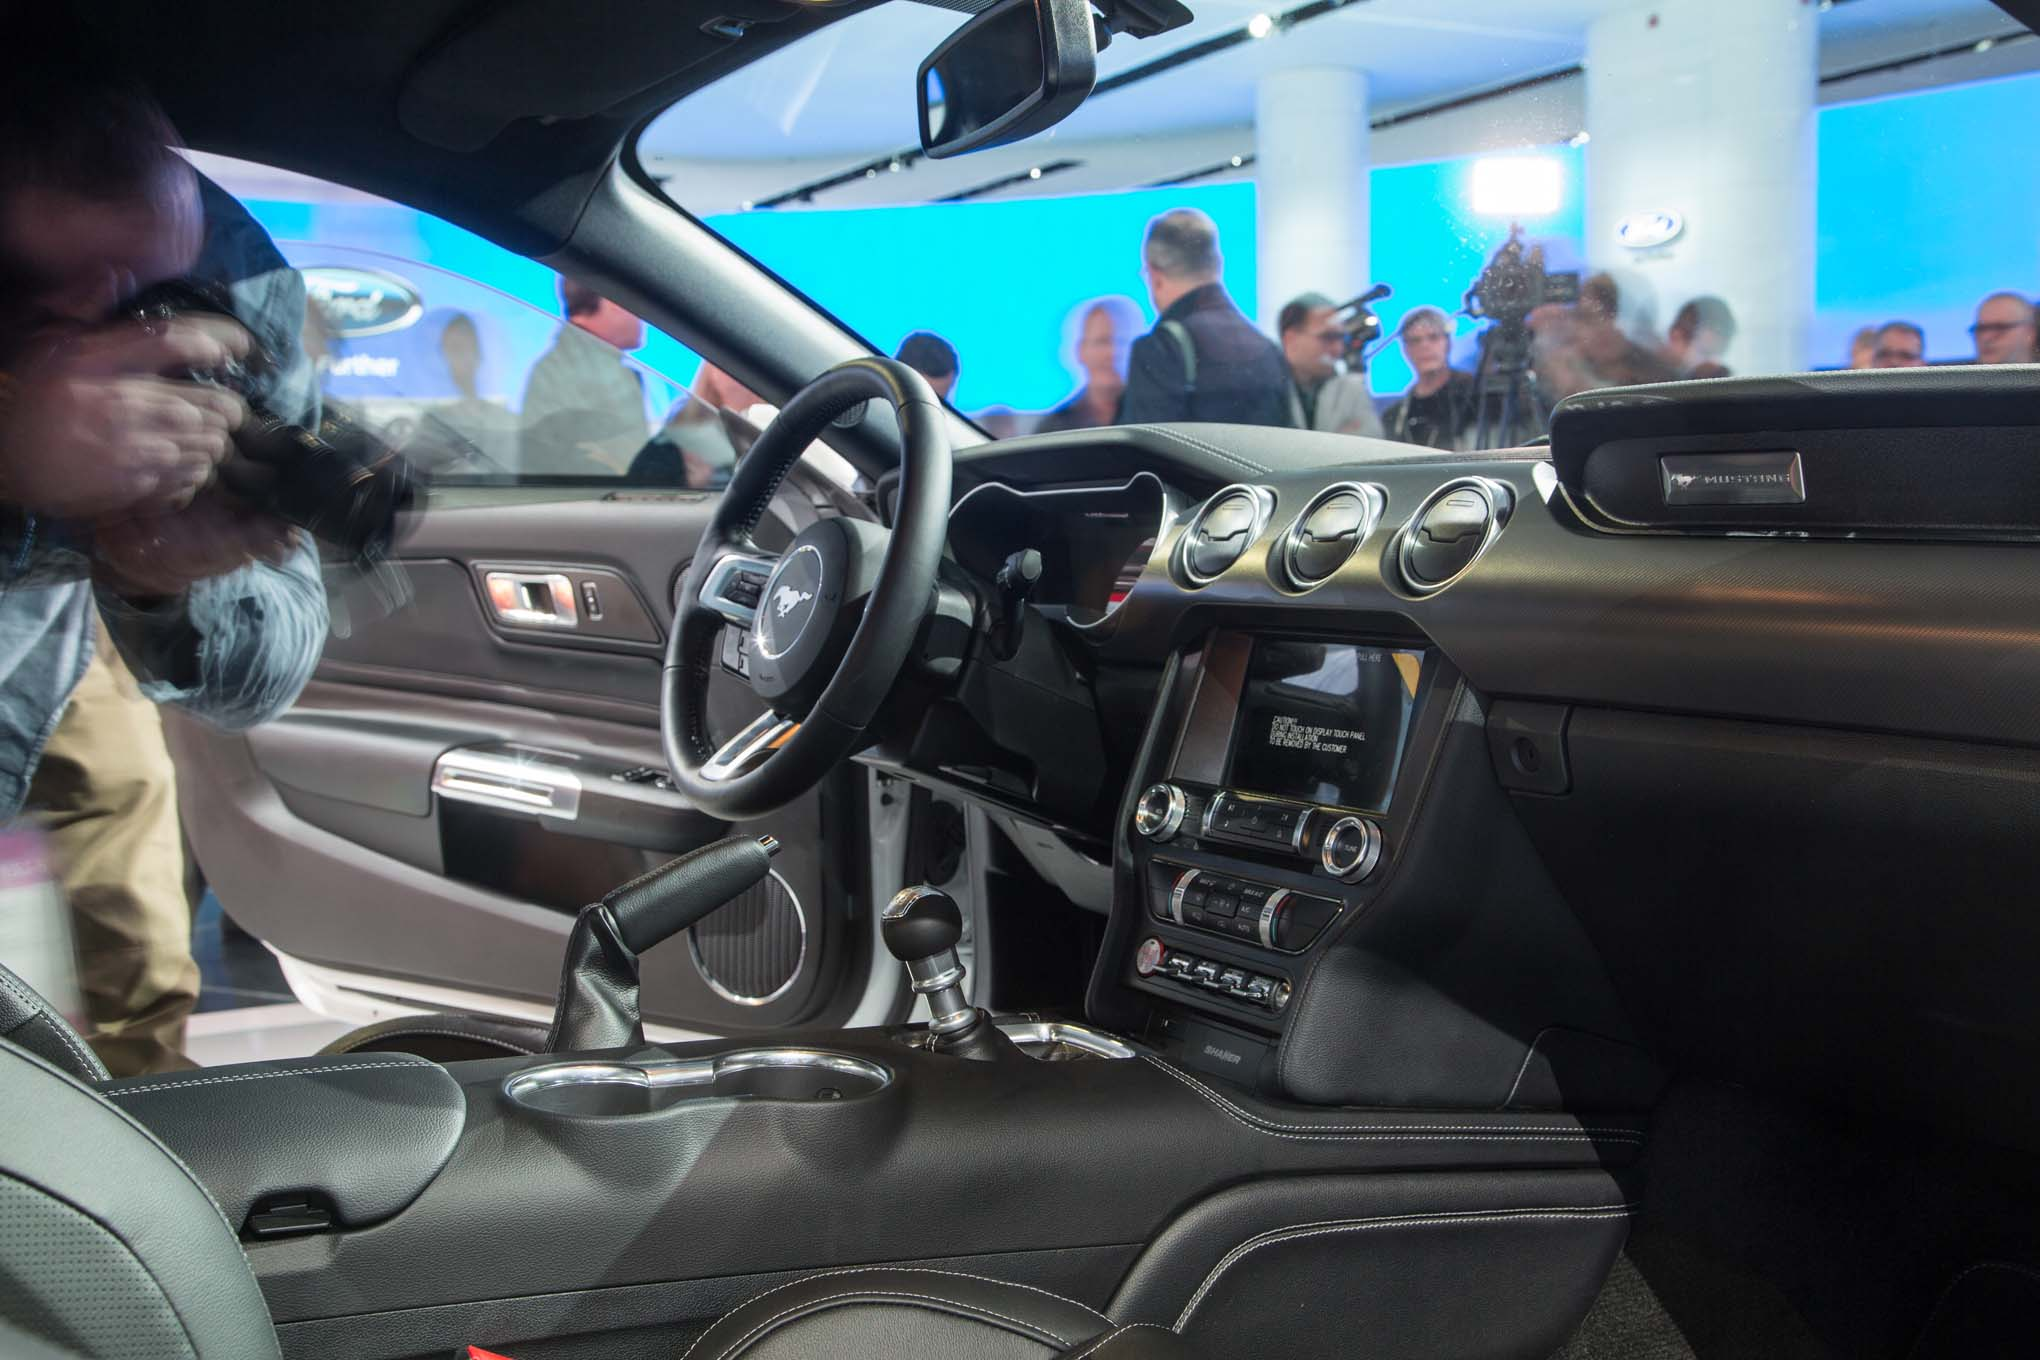 2018-Ford-Mustang-GT-interior-02